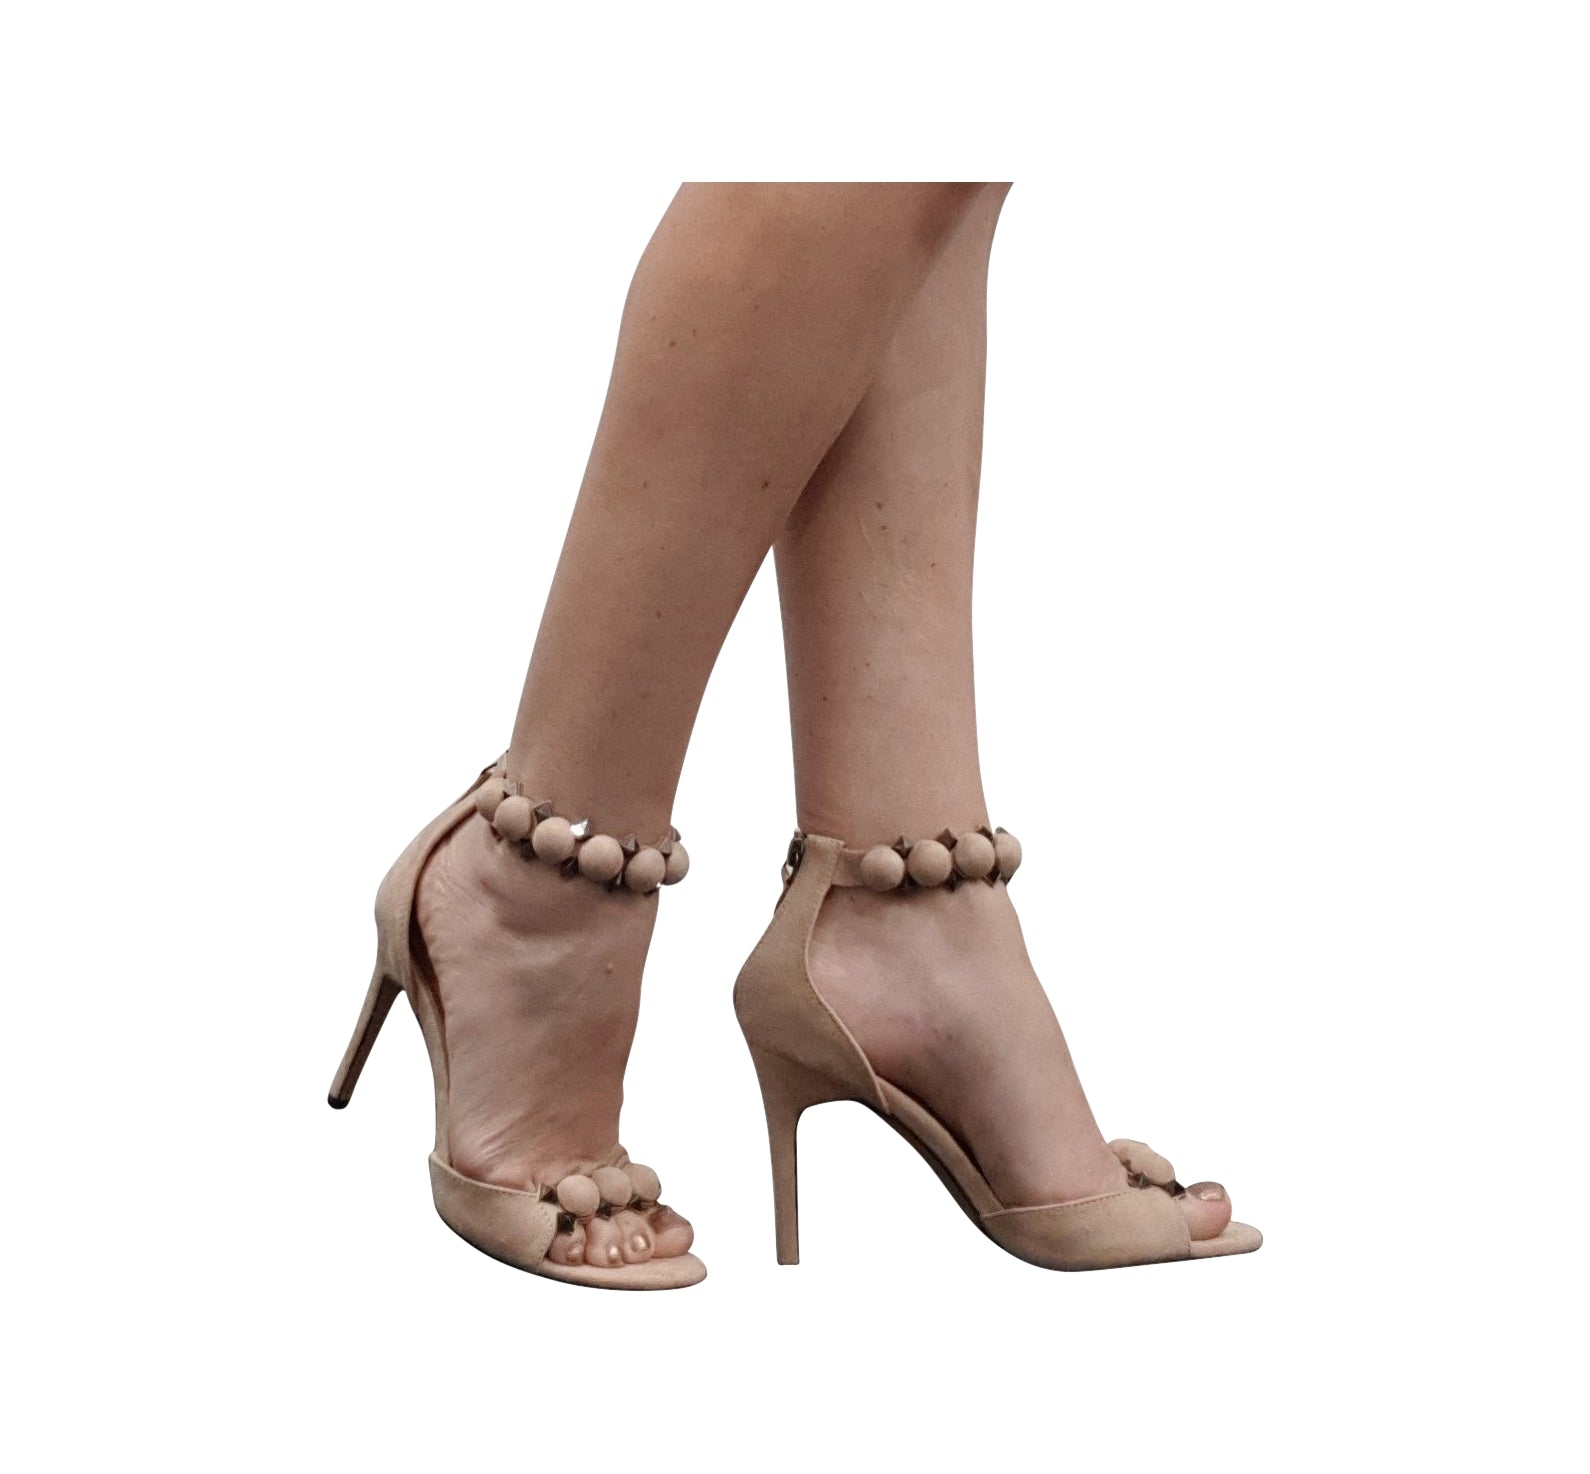 Stud Ankle High Heels - Beige